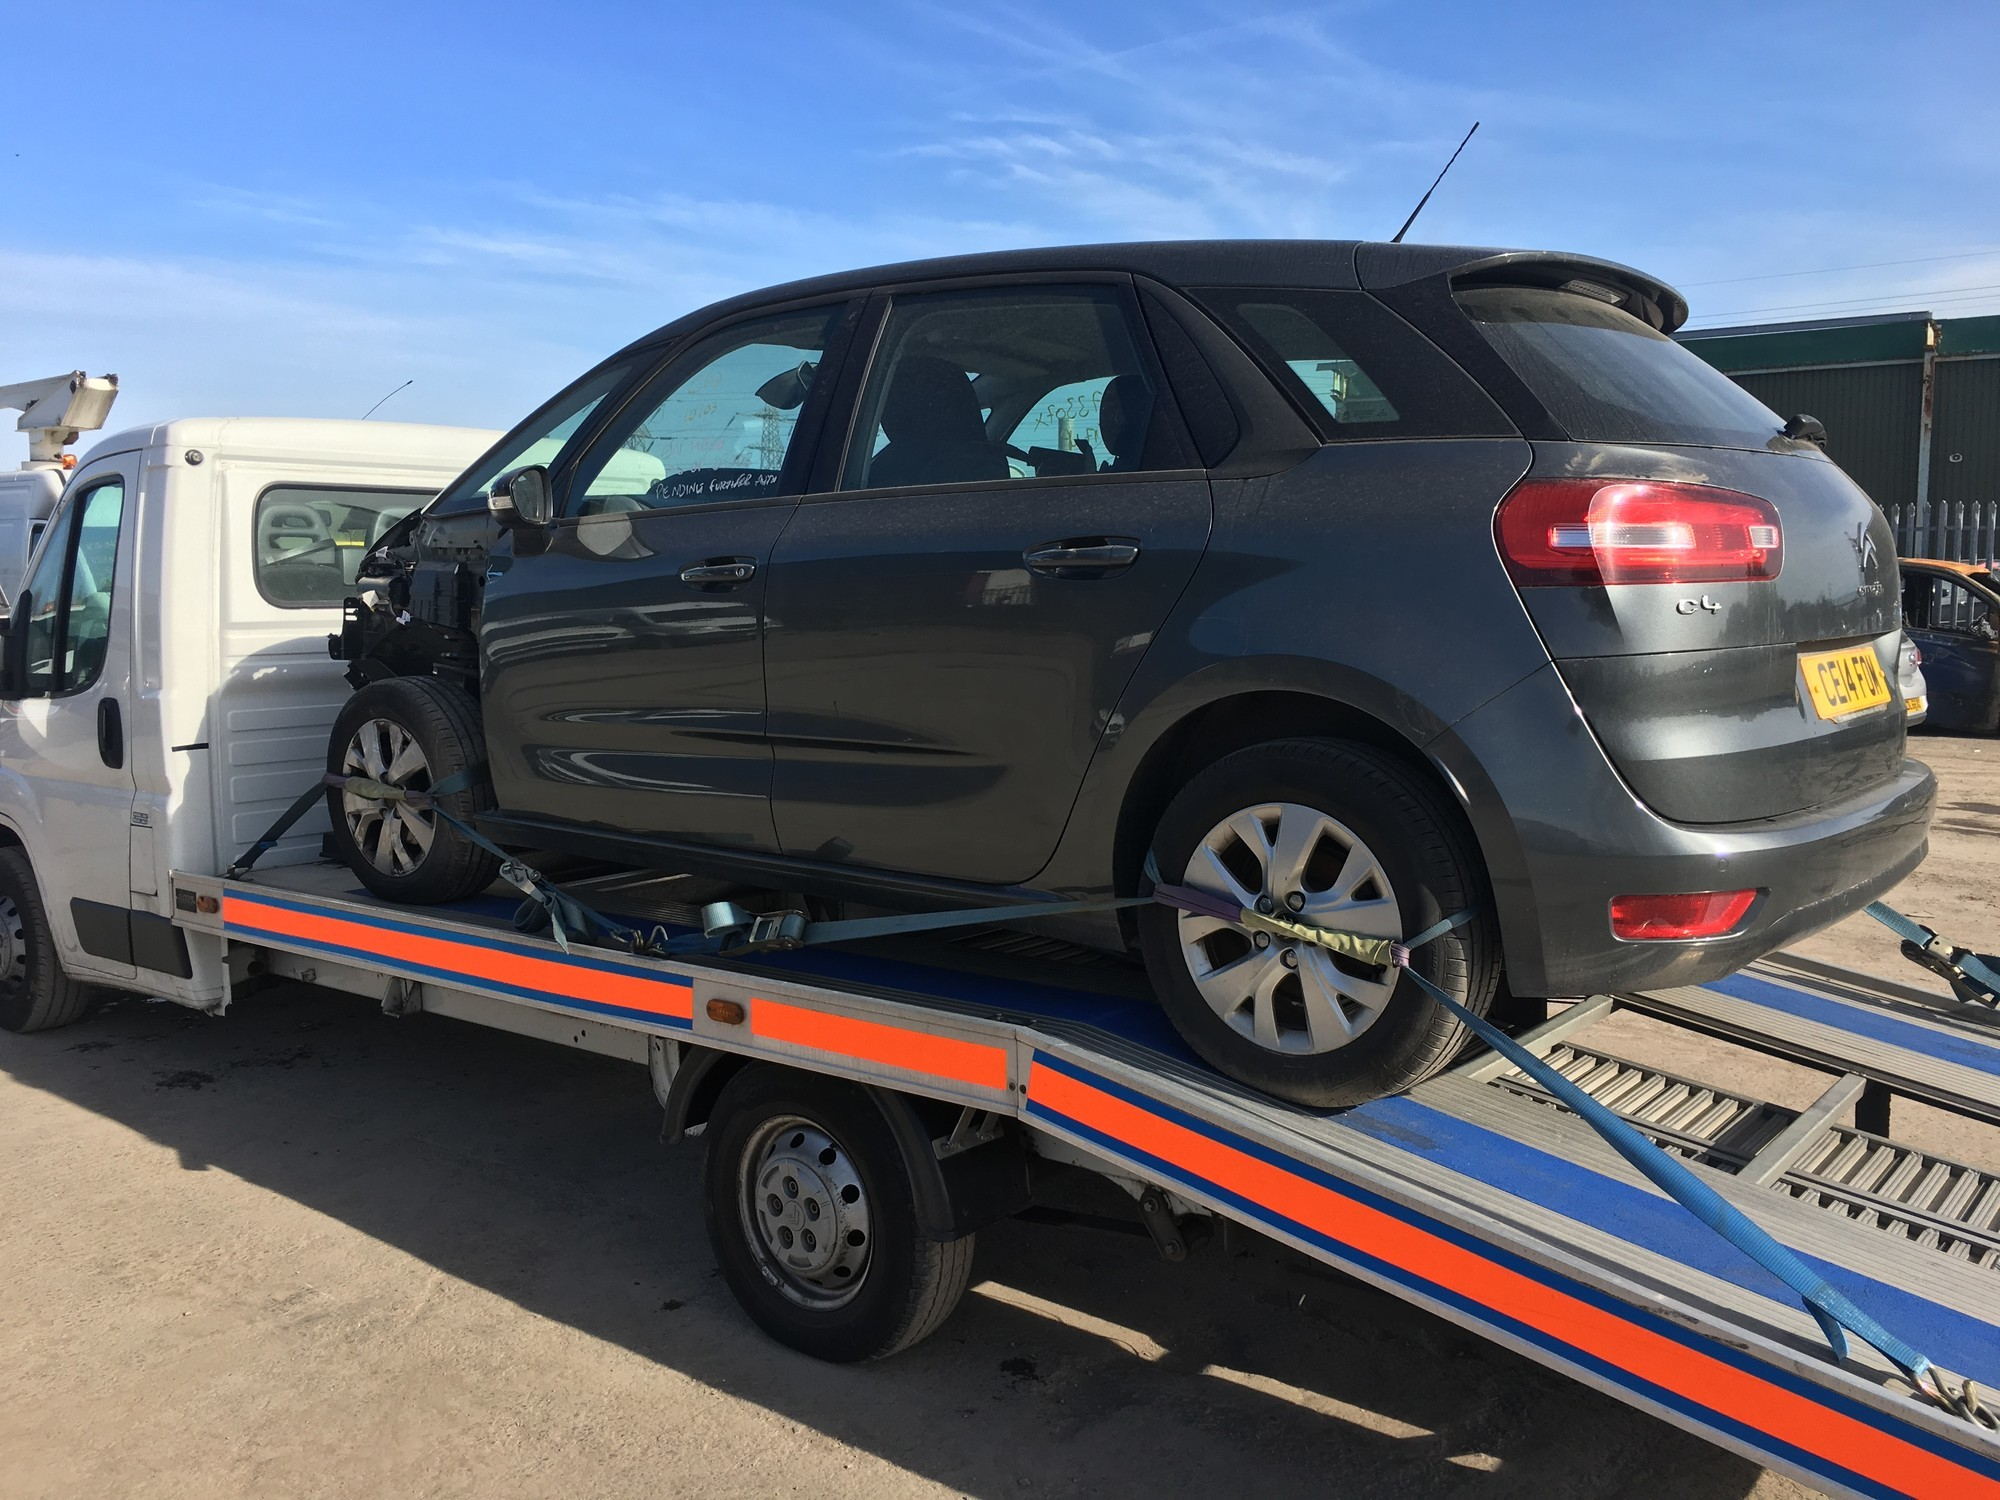 Damaged Citroen C4 Transported